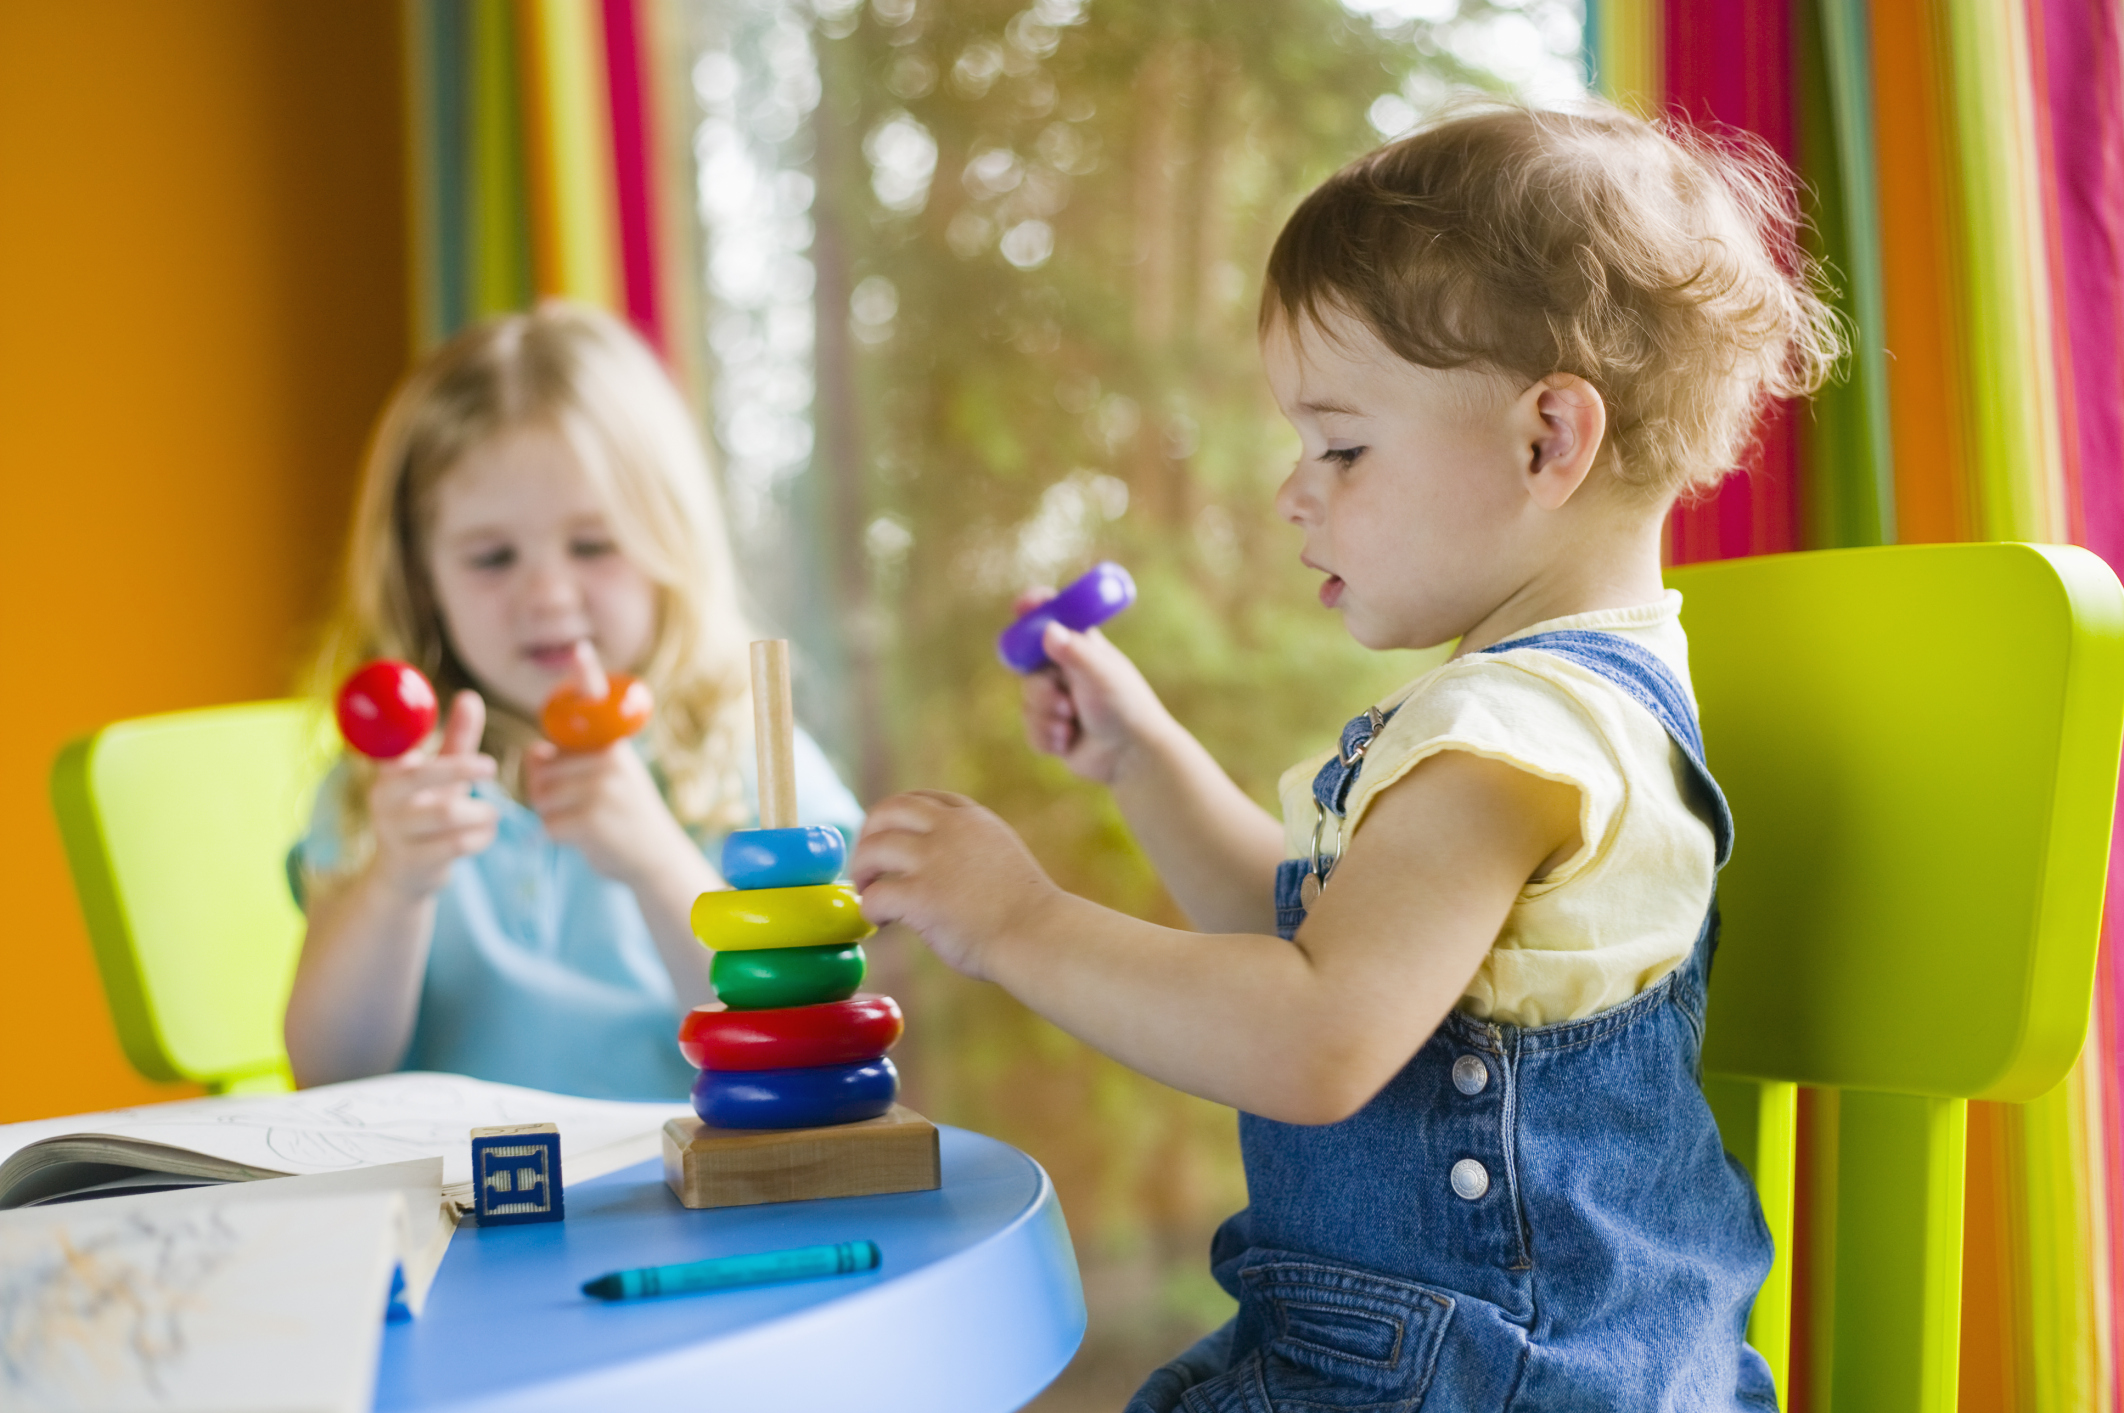 40 principles of child development from Maria Montessori